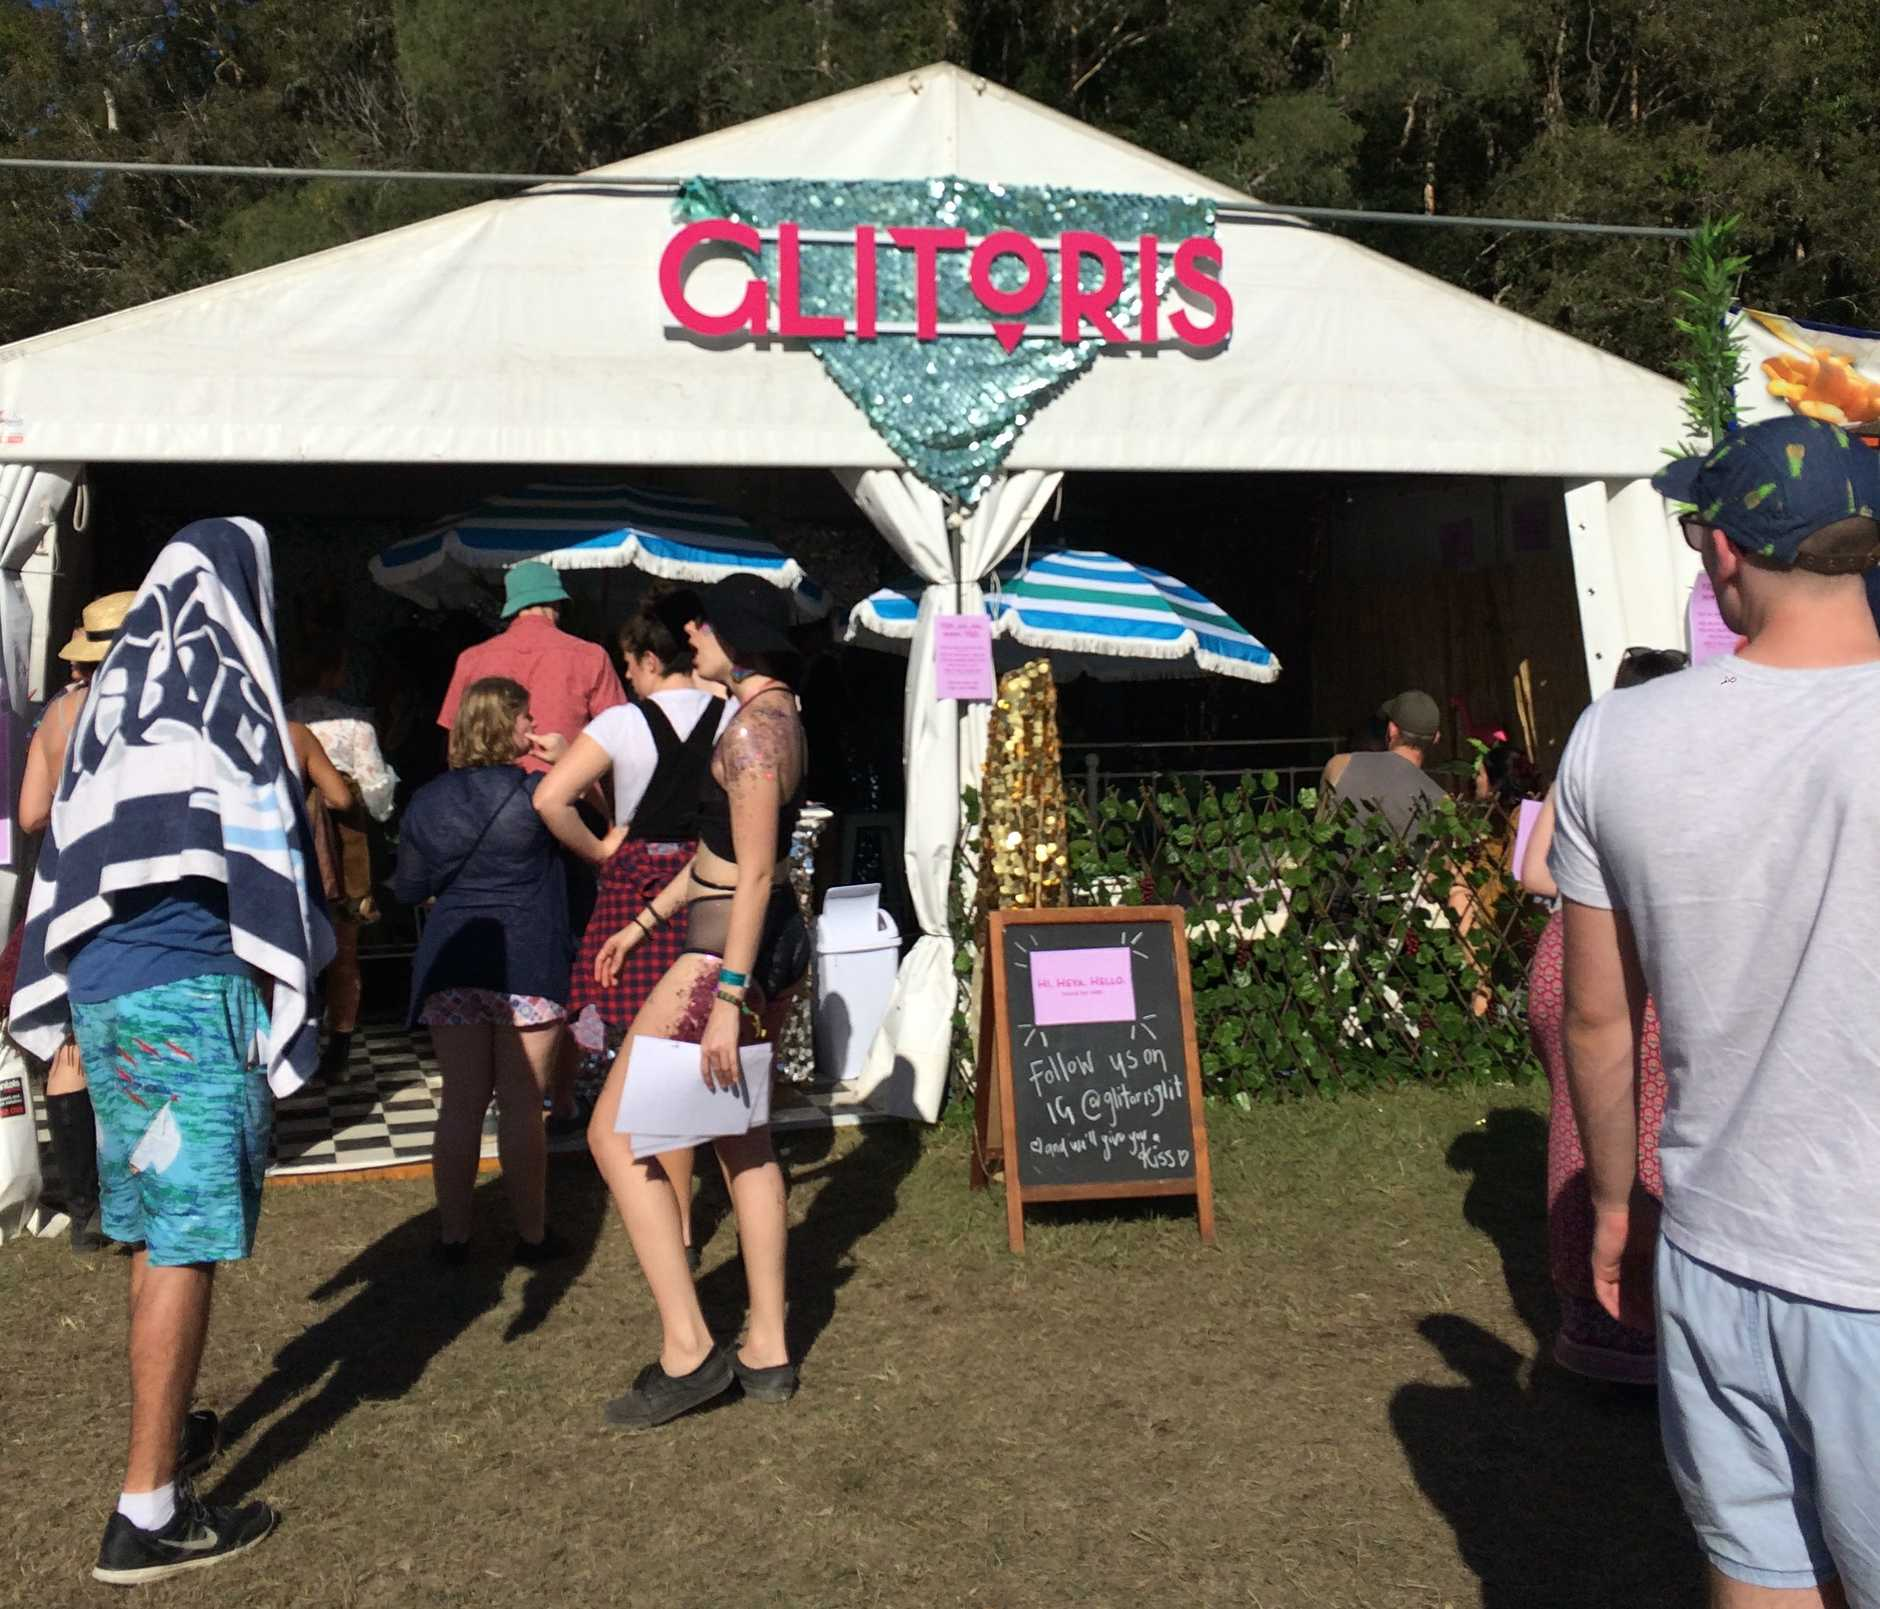 Glitoris tent at Splendour in the Grass, 2017.